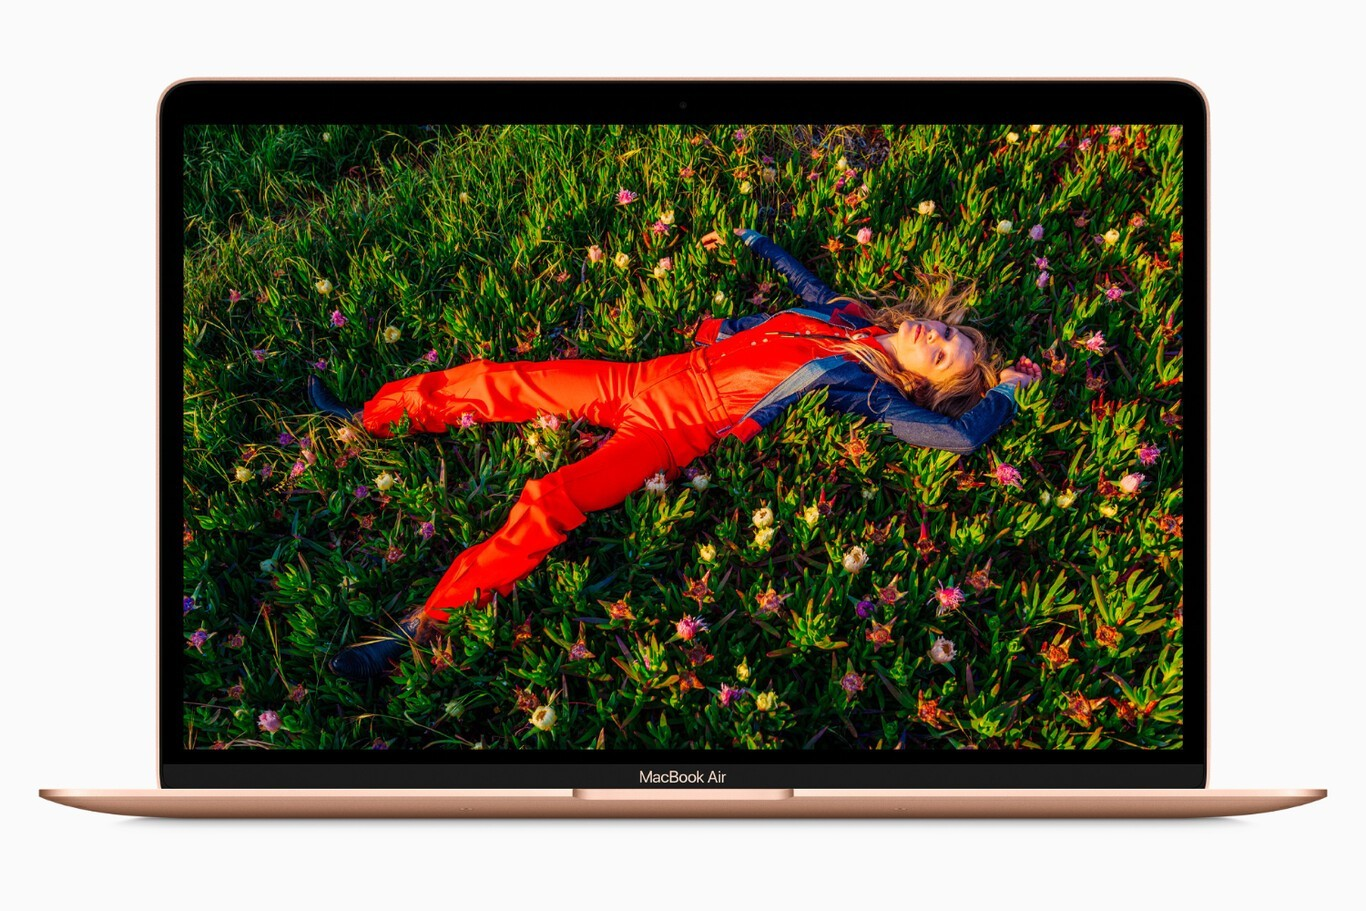 Macbook Air (2021): Features, Reviews, and Prices - Techidence